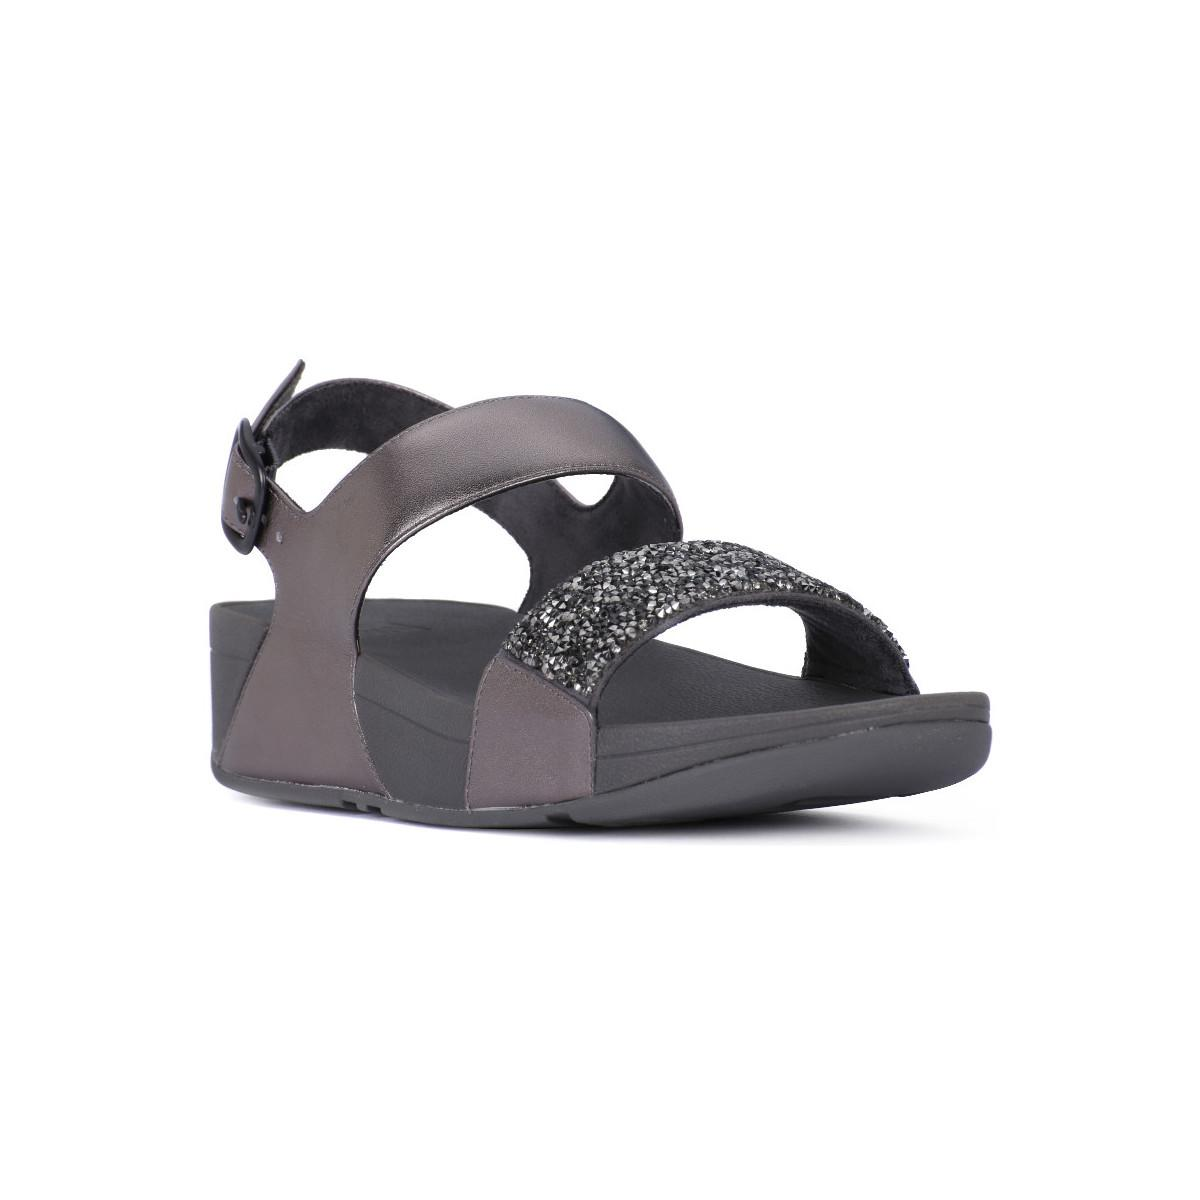 4255c3fd288 Fitflop Fit Flop Sparklie Crystal Women s Sandals In Grey in Gray - Lyst